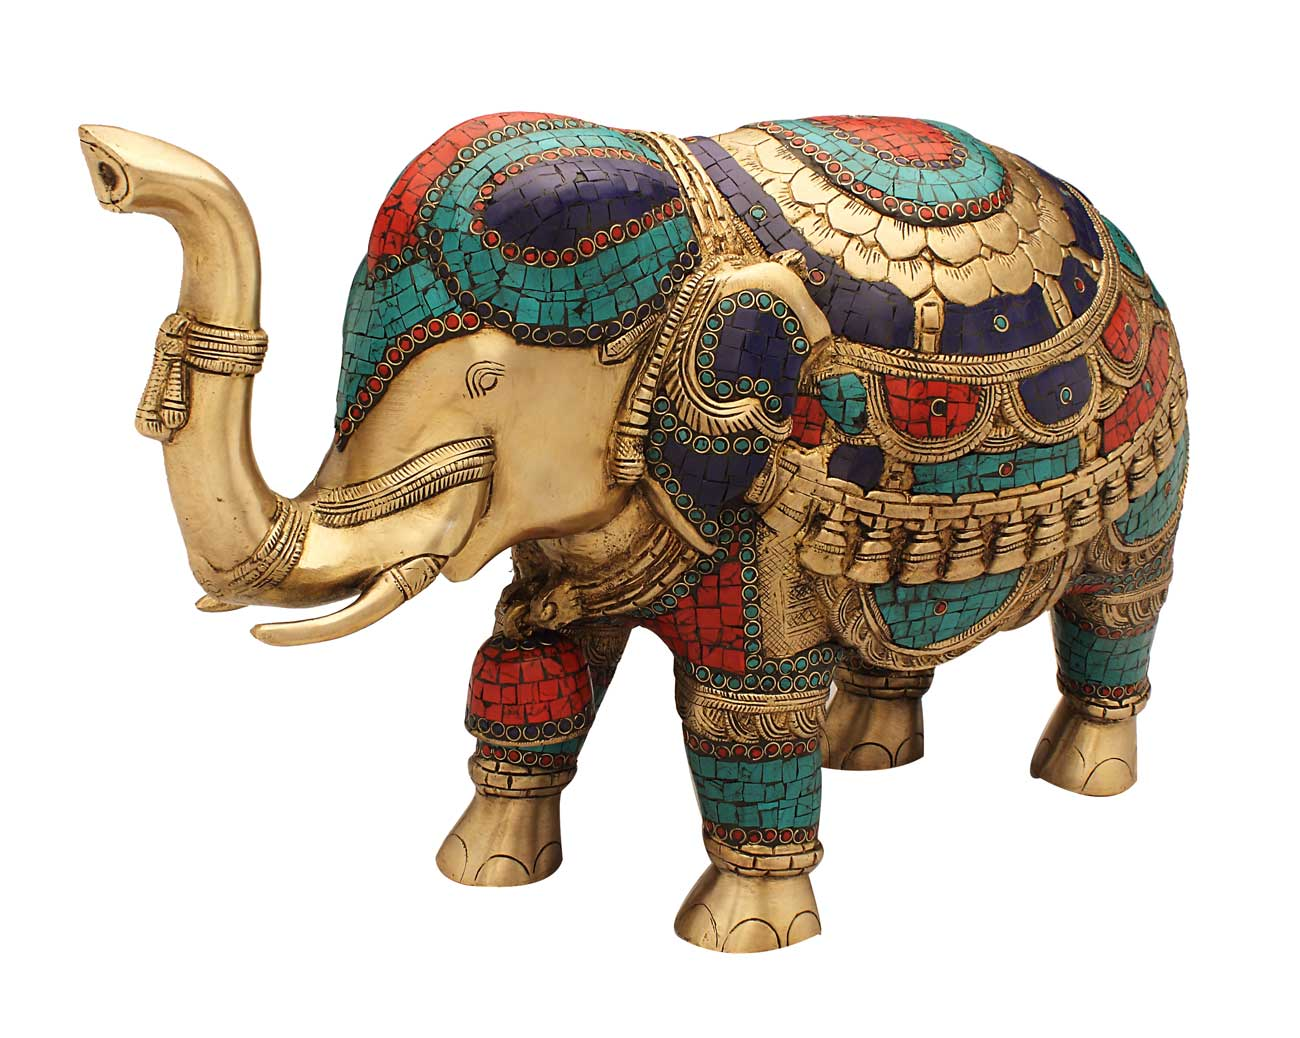 Elephant idol fengshui item turquoise coral color antique home d cor 15 ebay Colorful elephant home decor